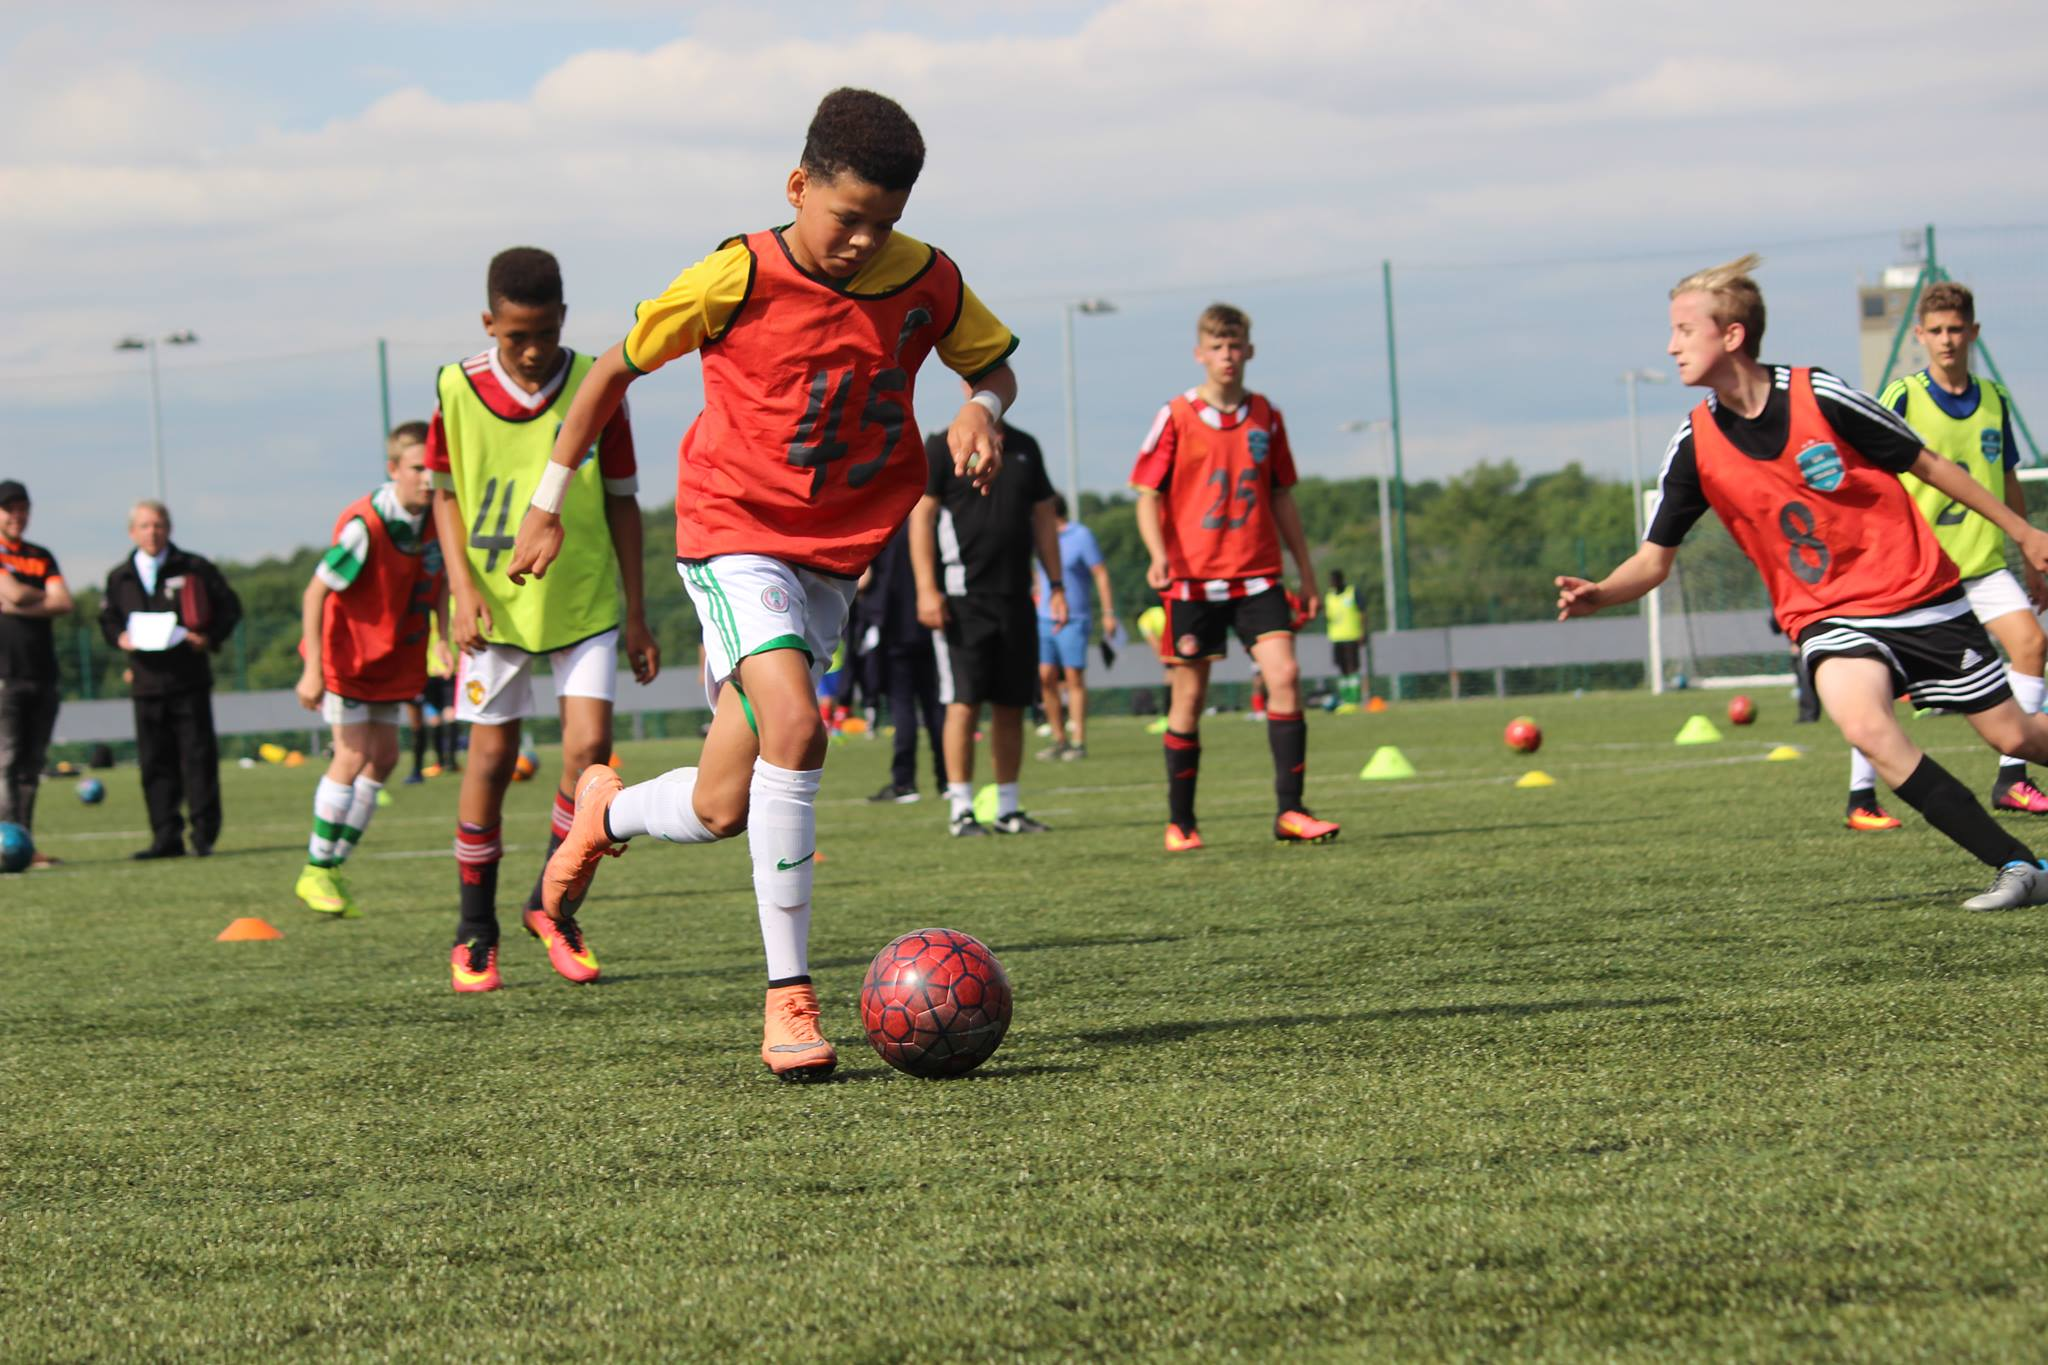 Birmingham Football Trials - August 29th - AM - Ages 10 to 14.  HURRY, 4 spaces left at this price!